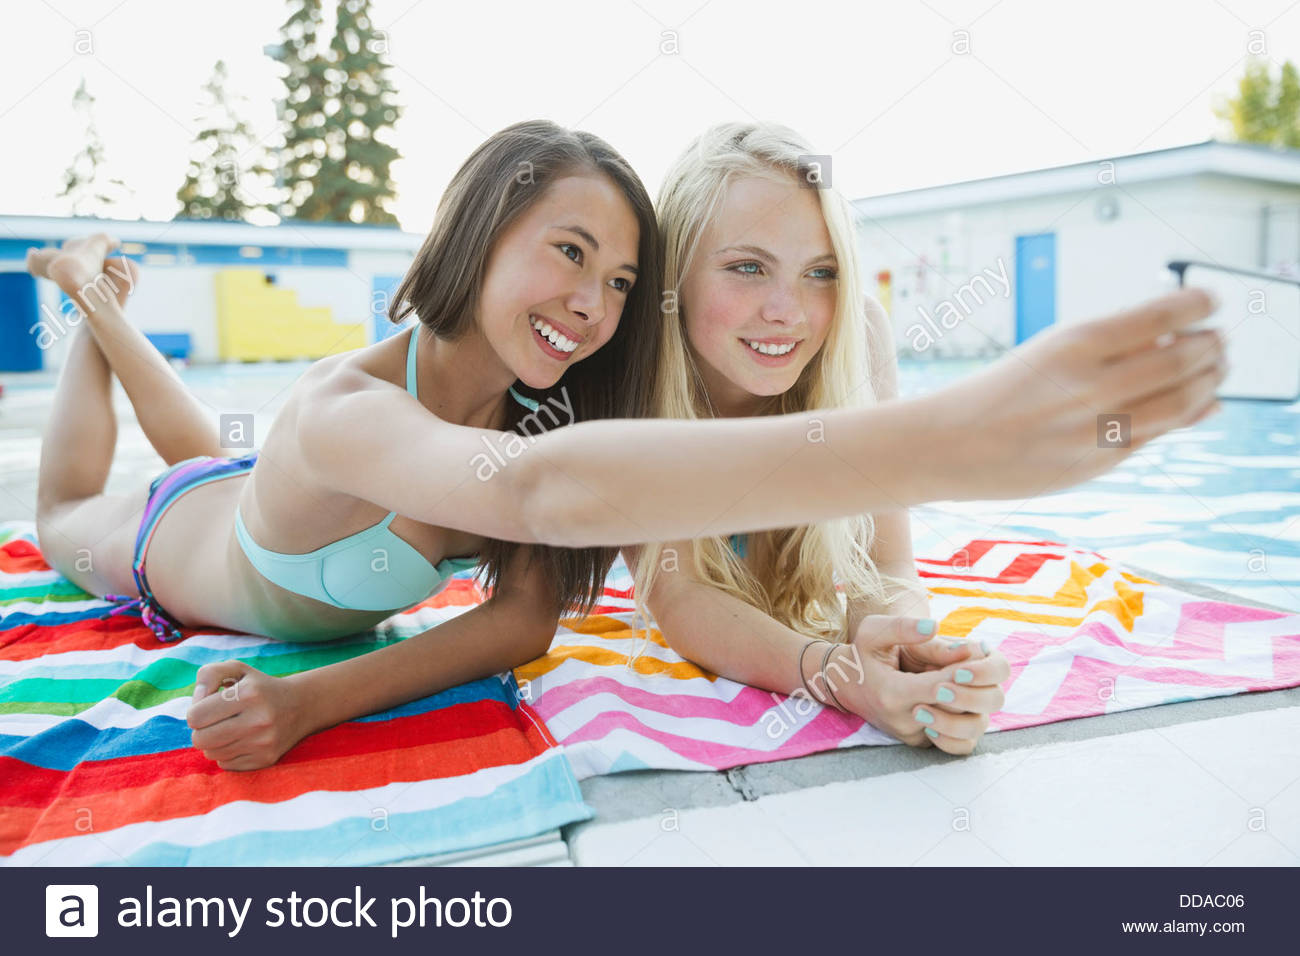 Smiling female friends taking self-portrait by swimming pool - Stock Image